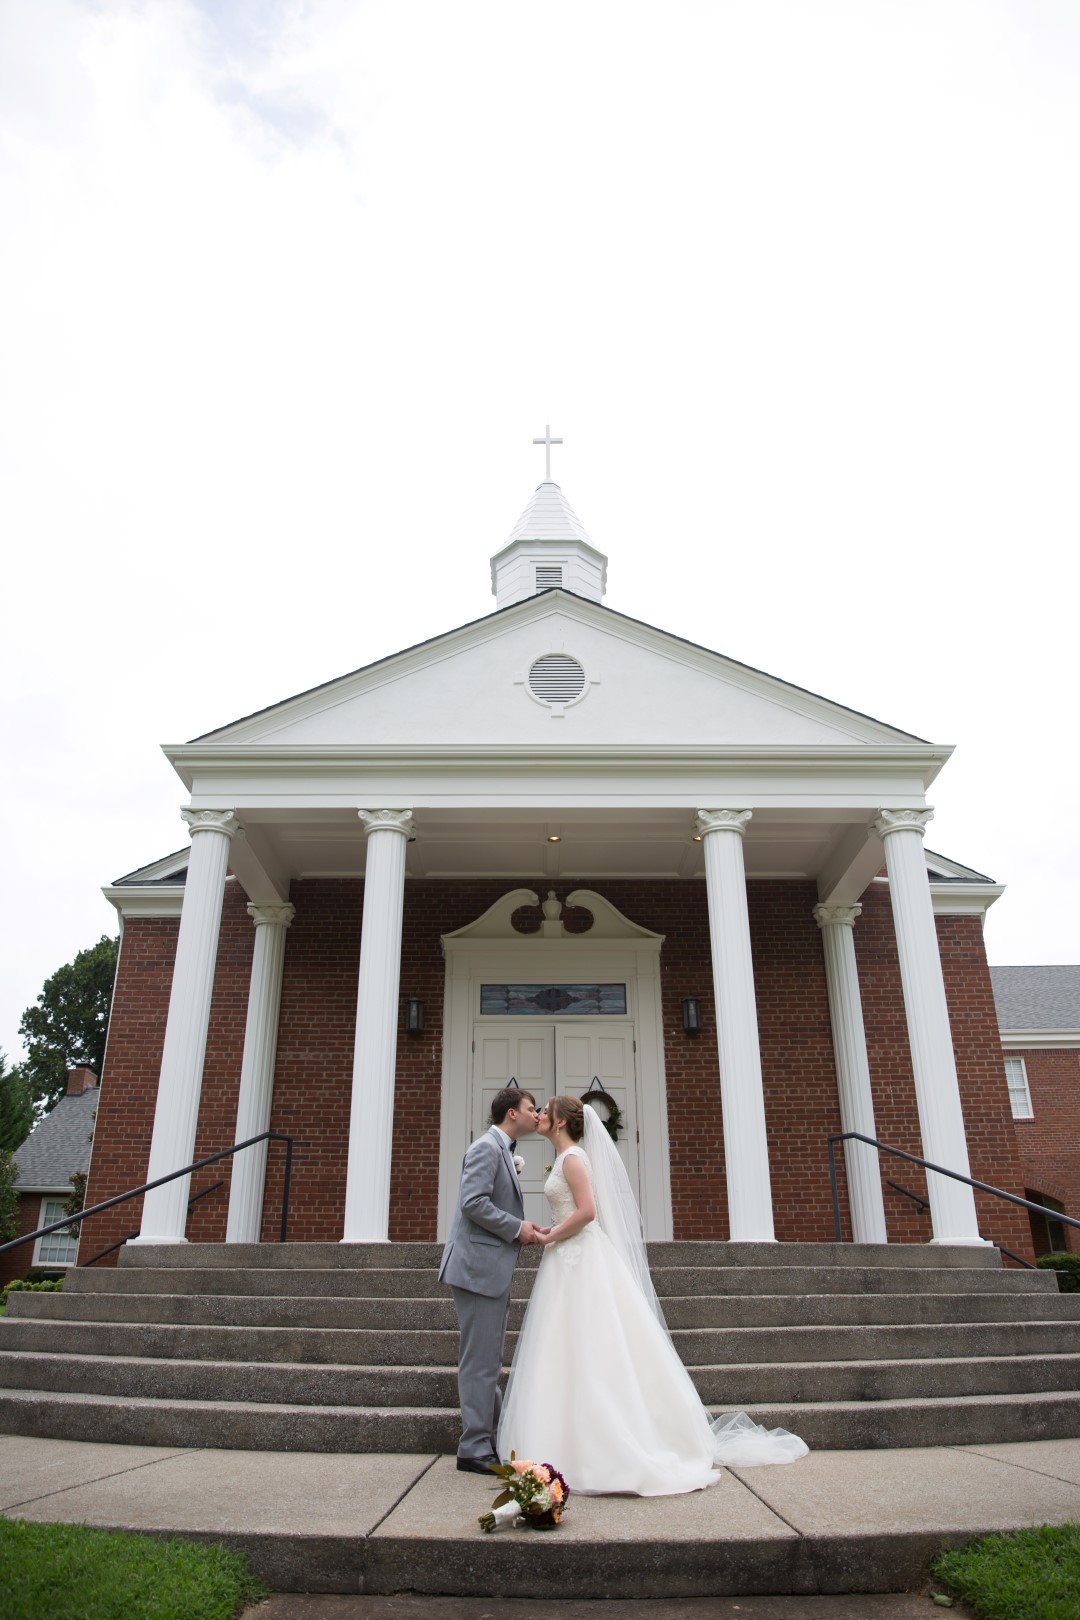 Weddings at Glendale United Methodist Church - Nashville